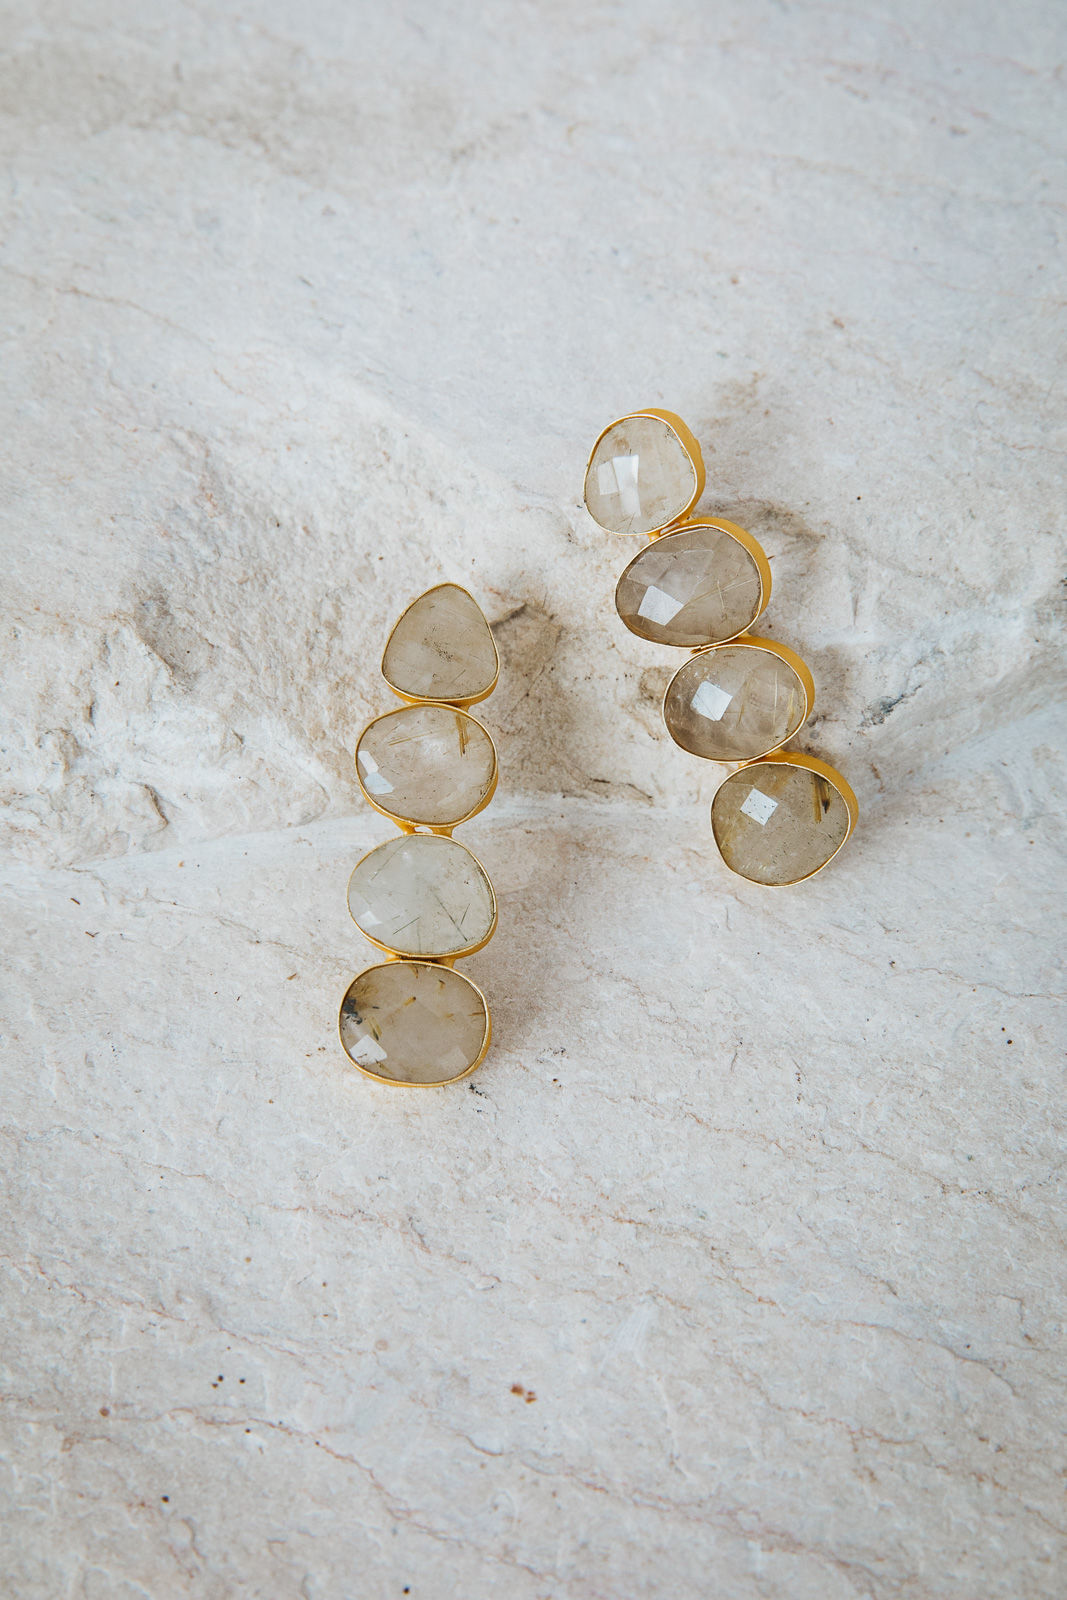 CLEAR QUARTZ PEBBLE EARRINGS